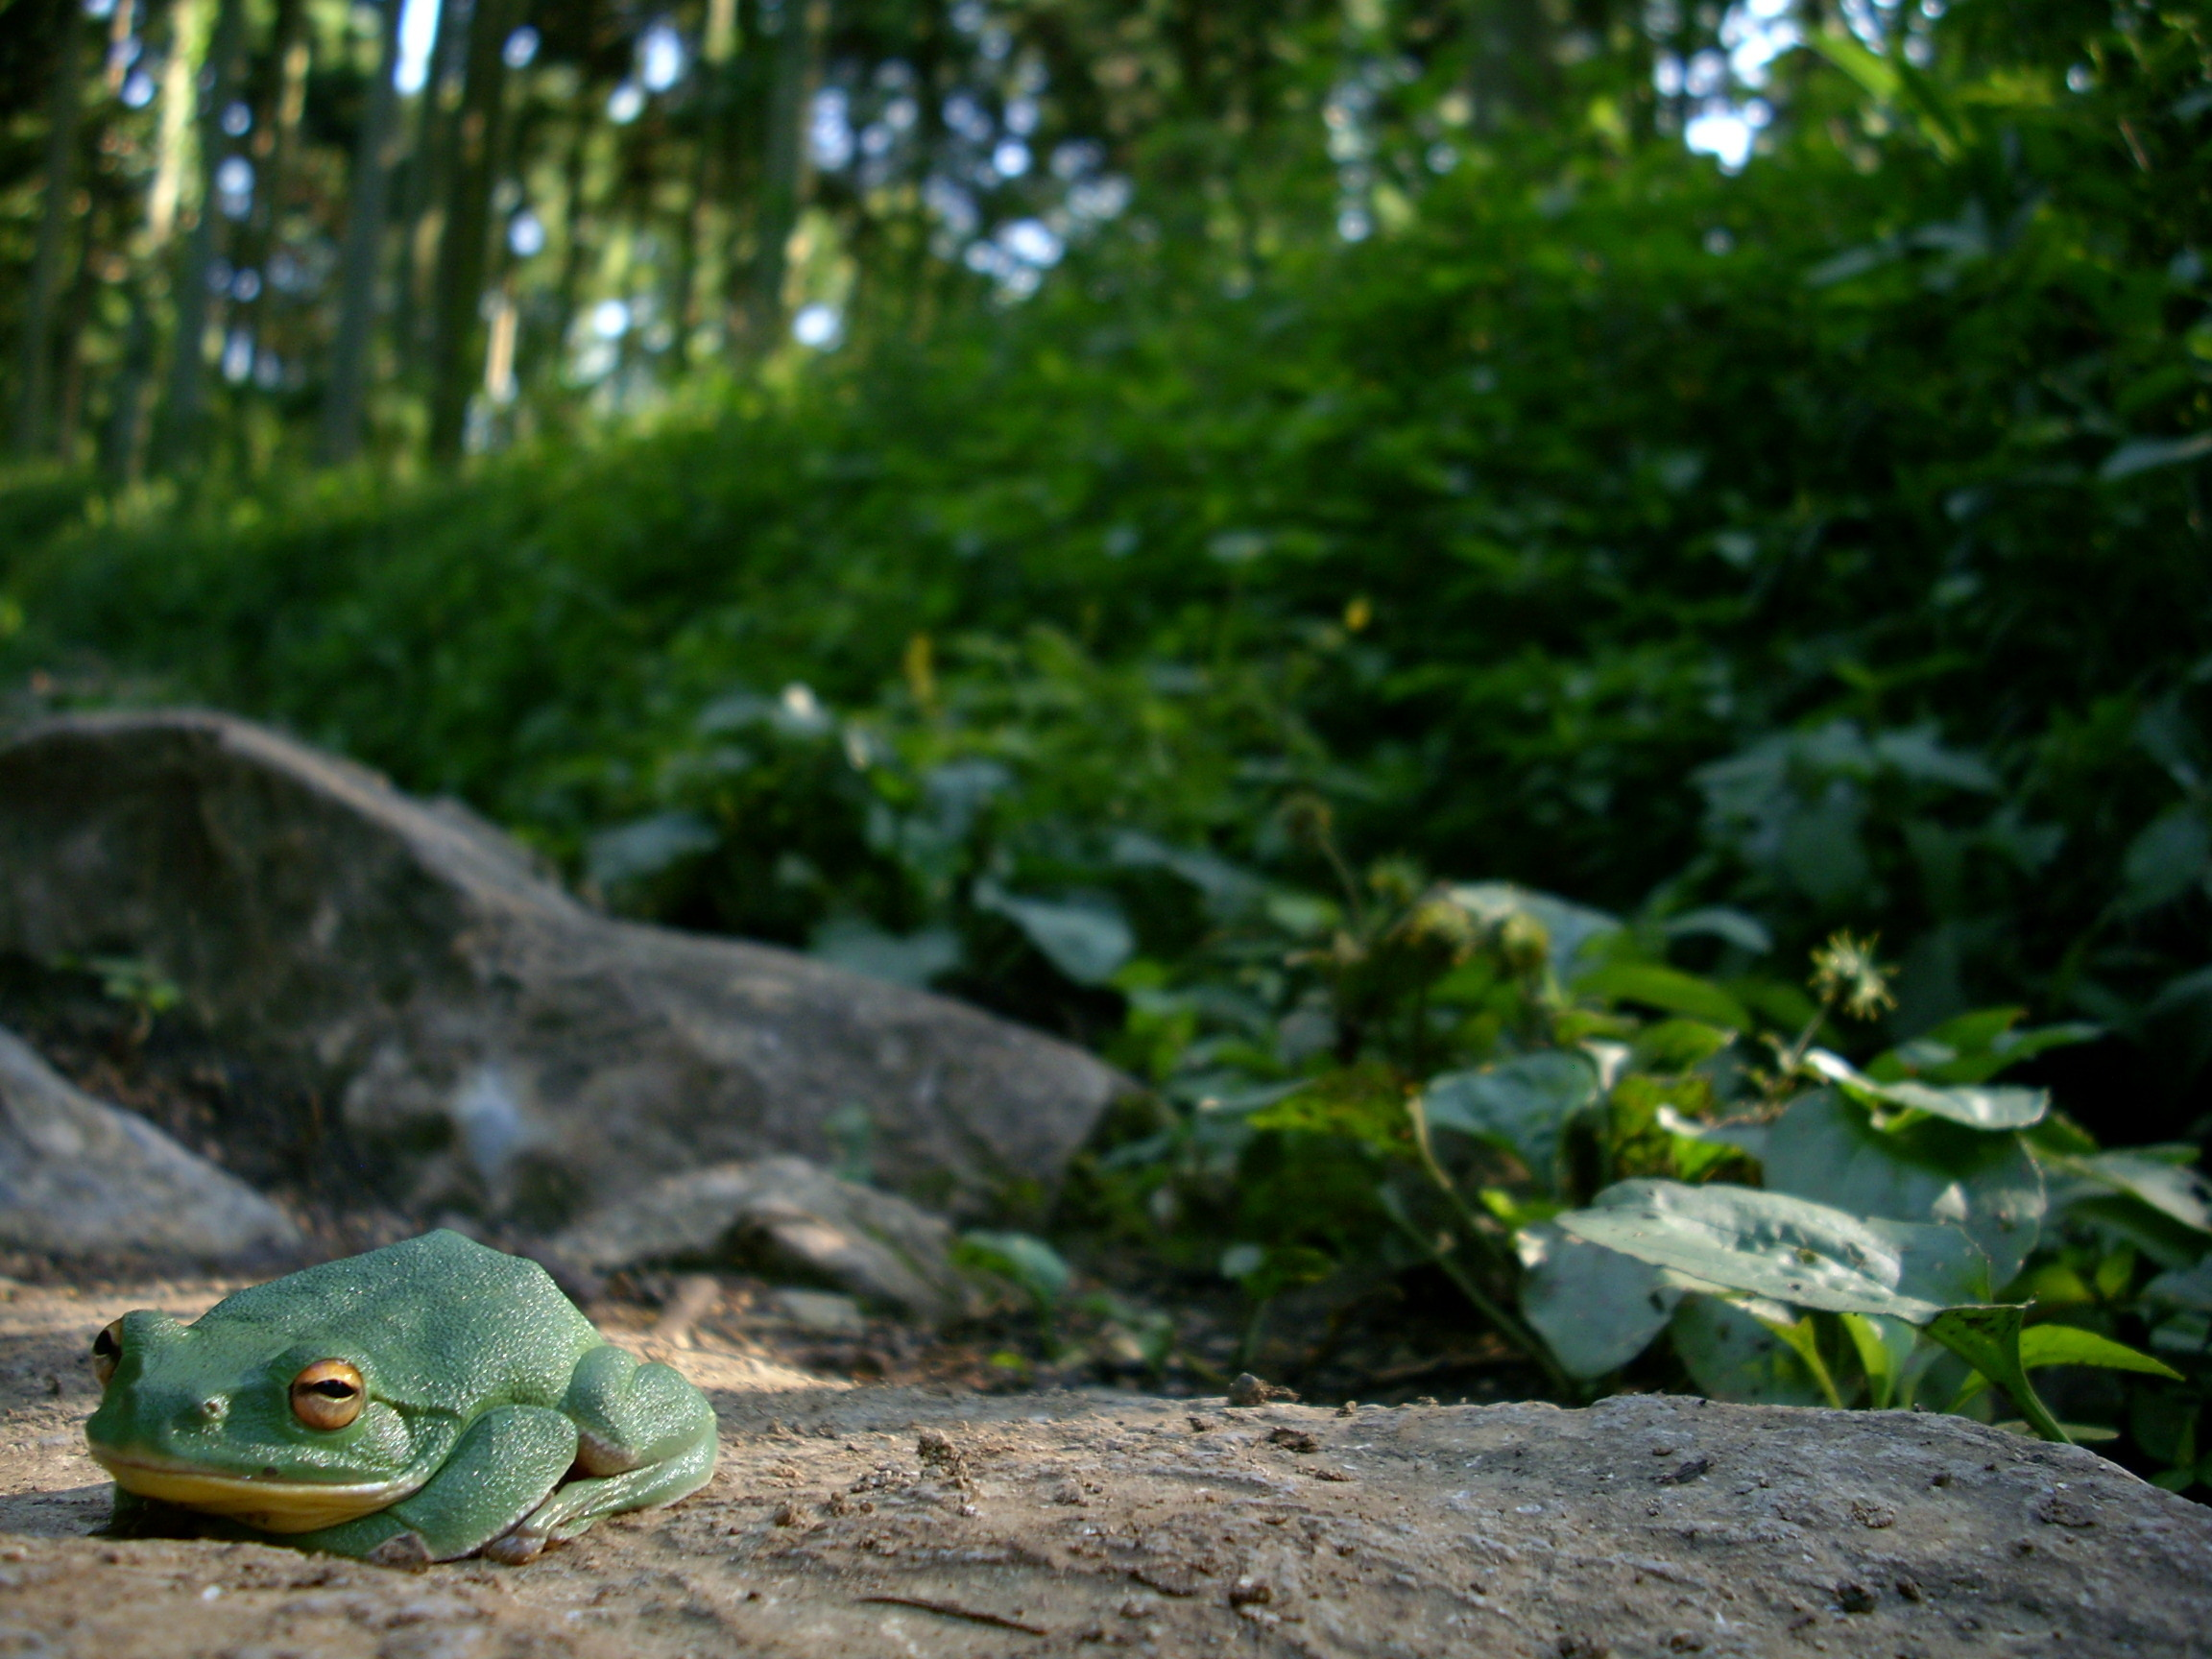 nature Frogs amphibians HD Wallpaper